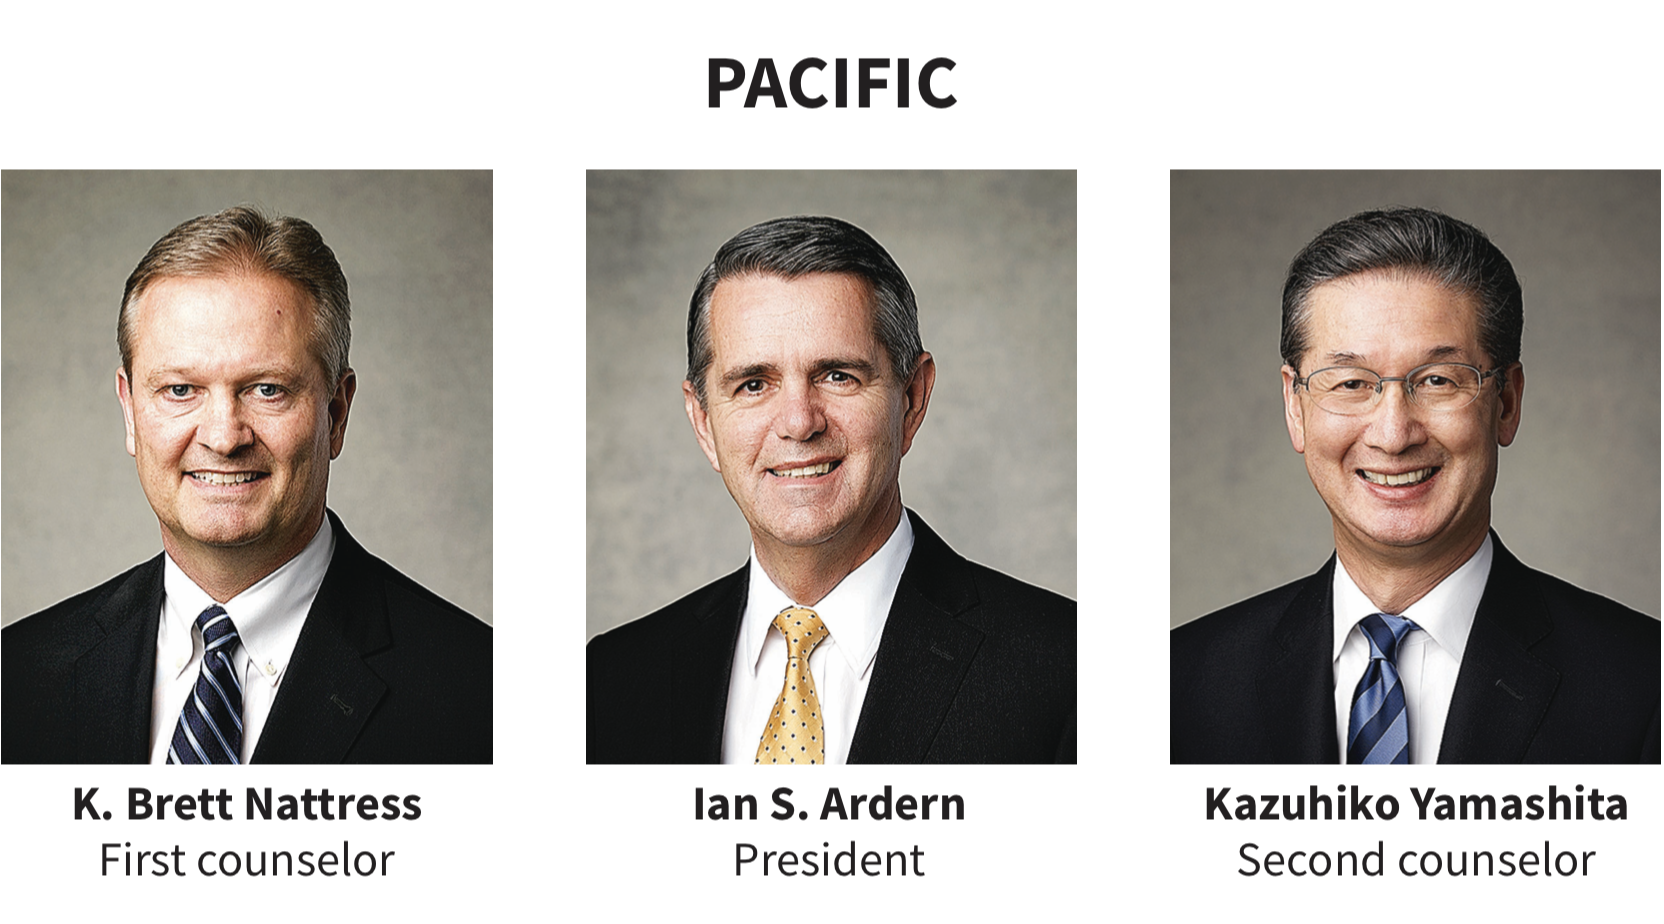 Pacific area presidency